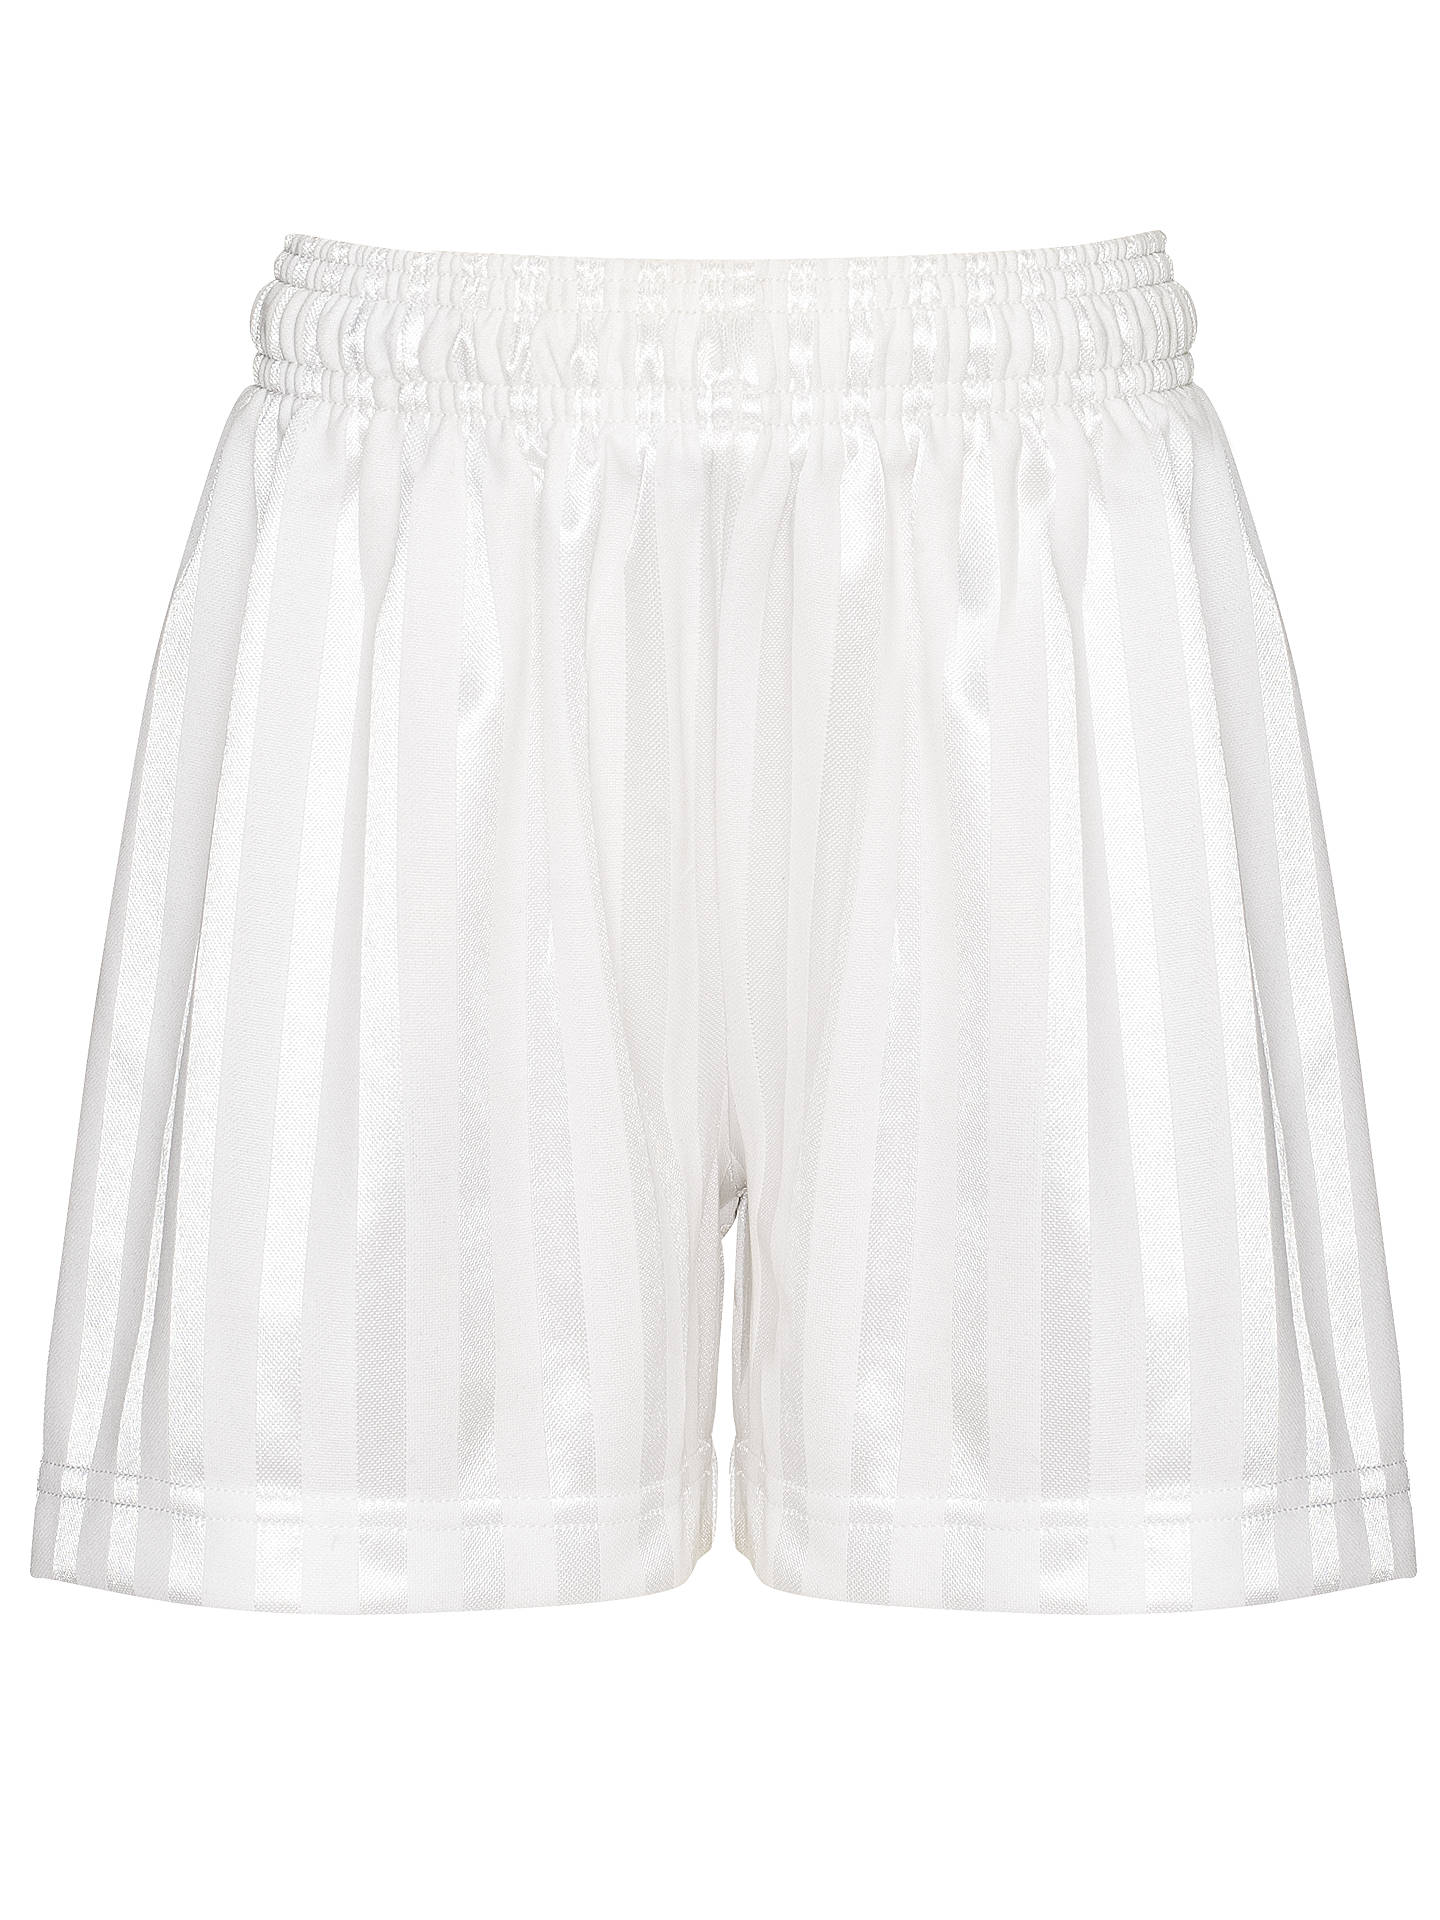 Buy John Lewis & Partners Football Shorts, White, 3-4 years Online at johnlewis.com